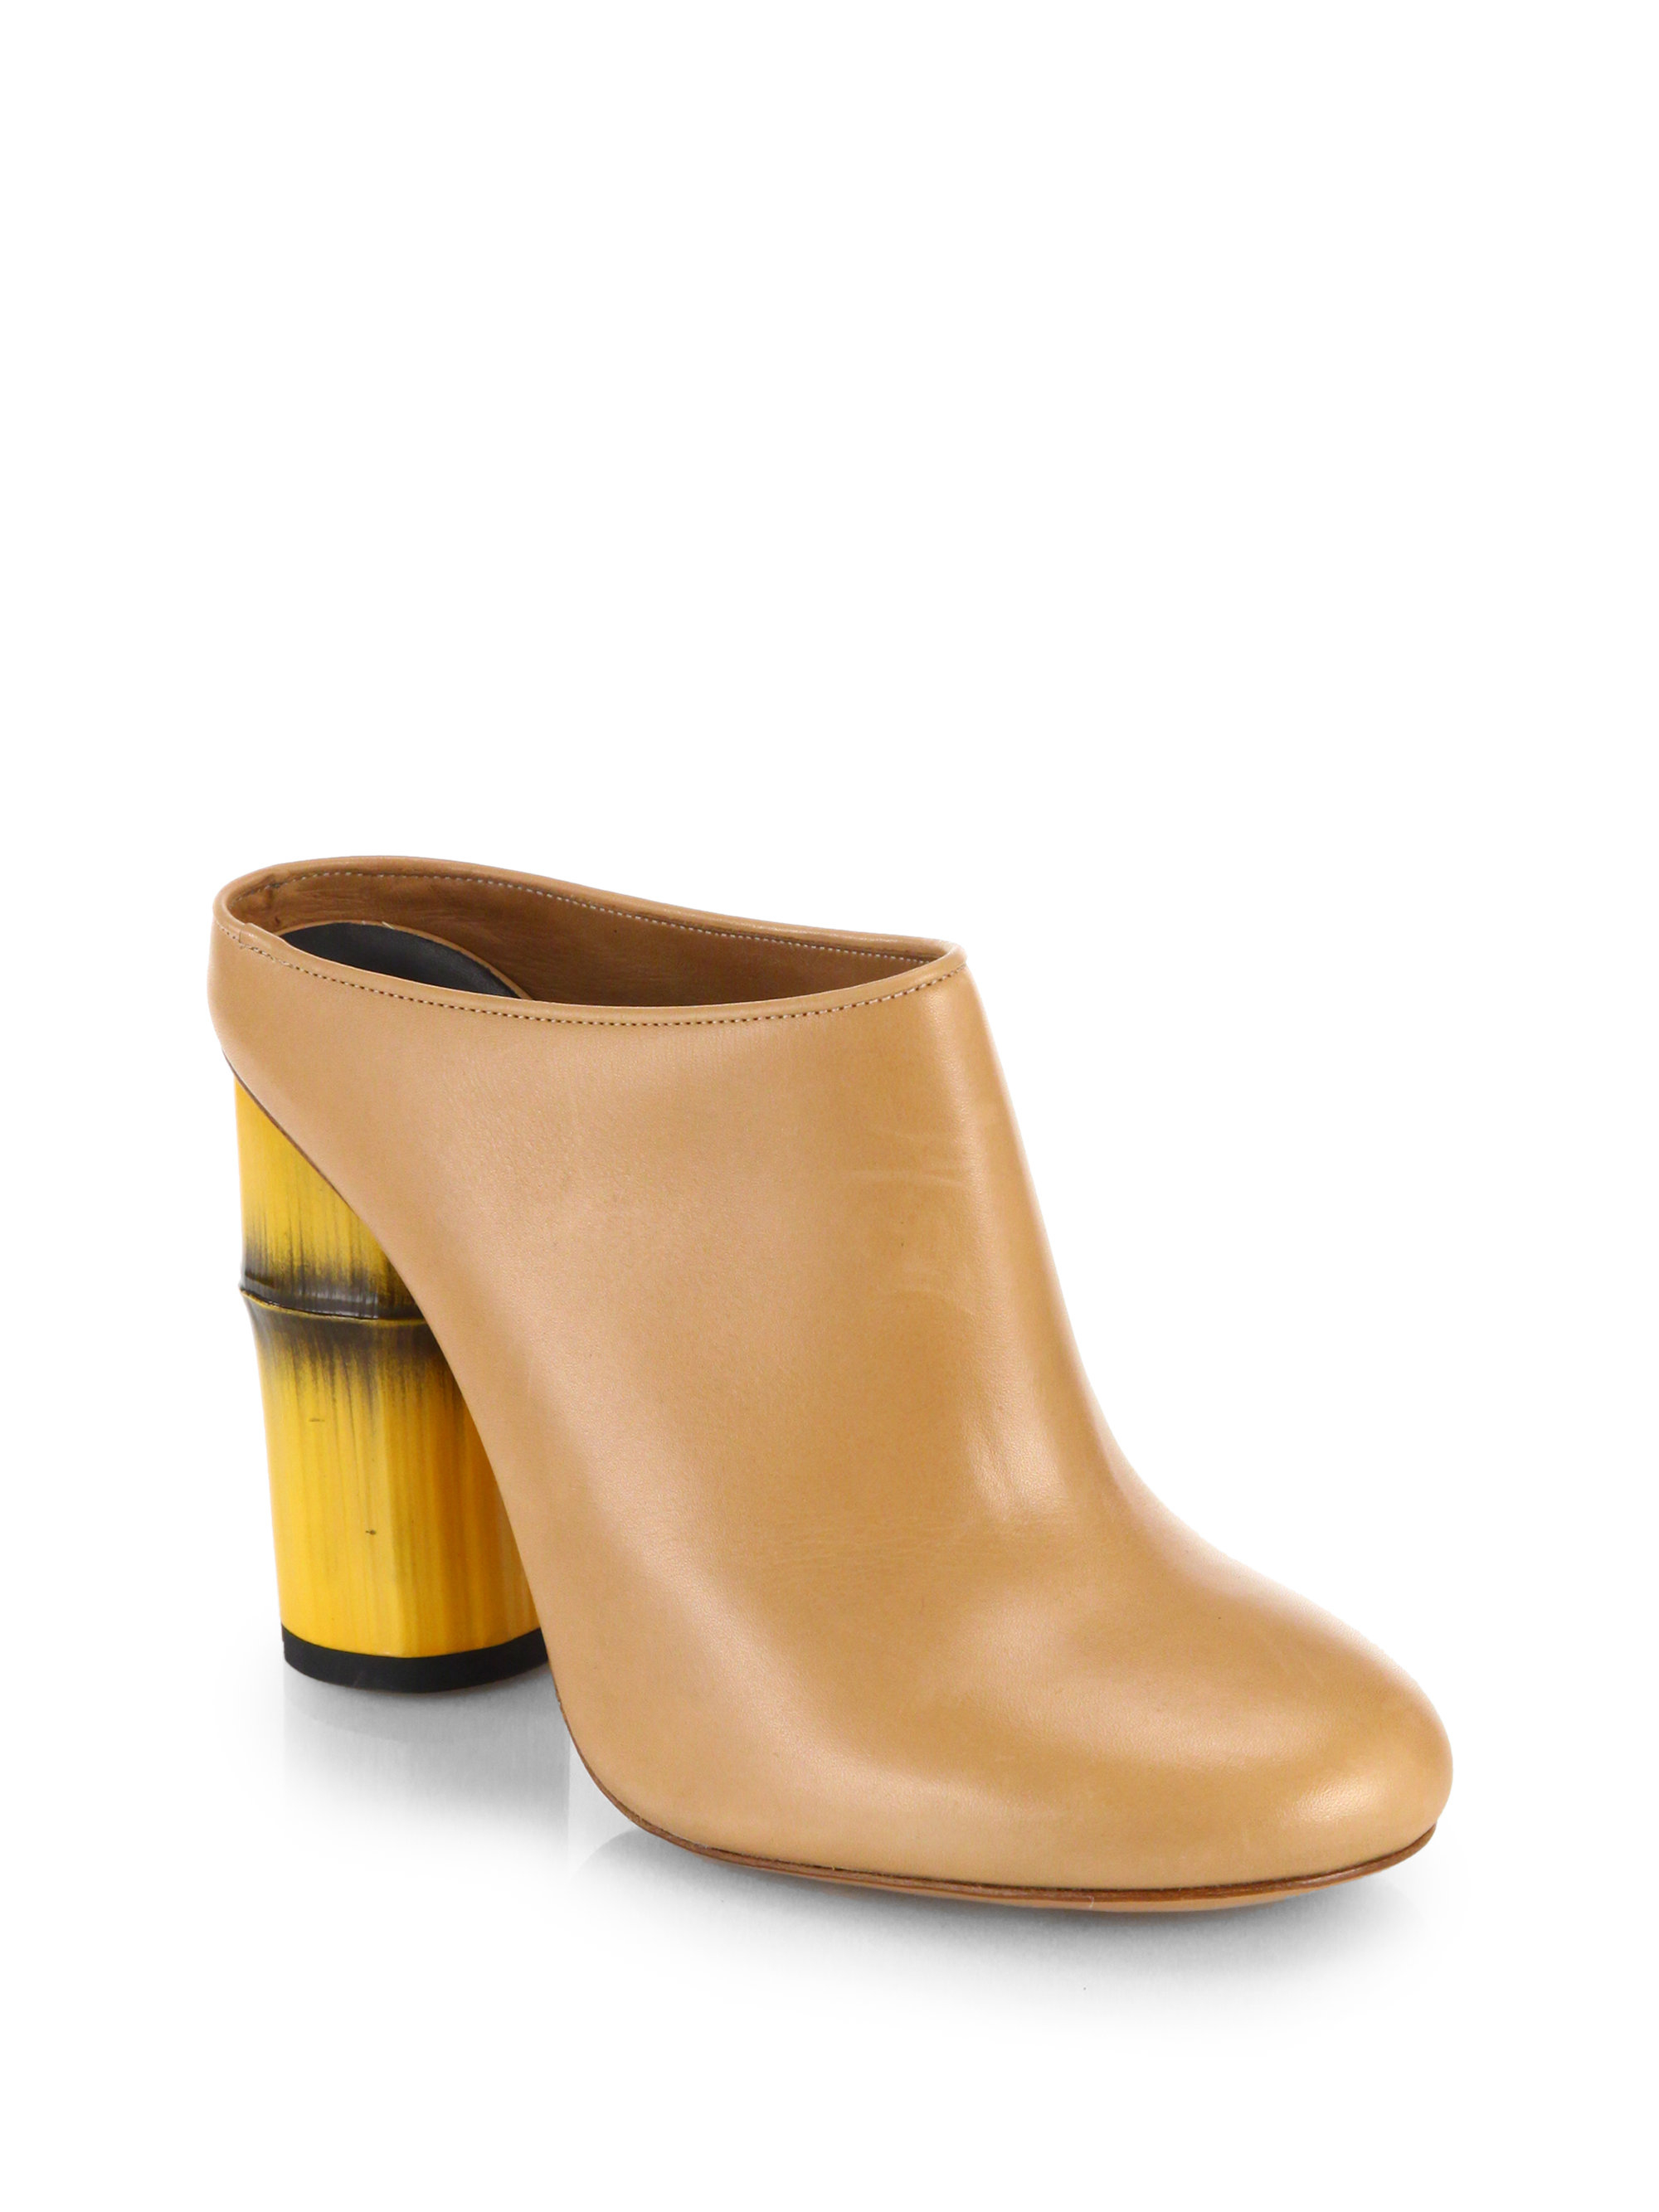 Lyst Acne Studios Flor Bamboo Heel Clogs In Natural